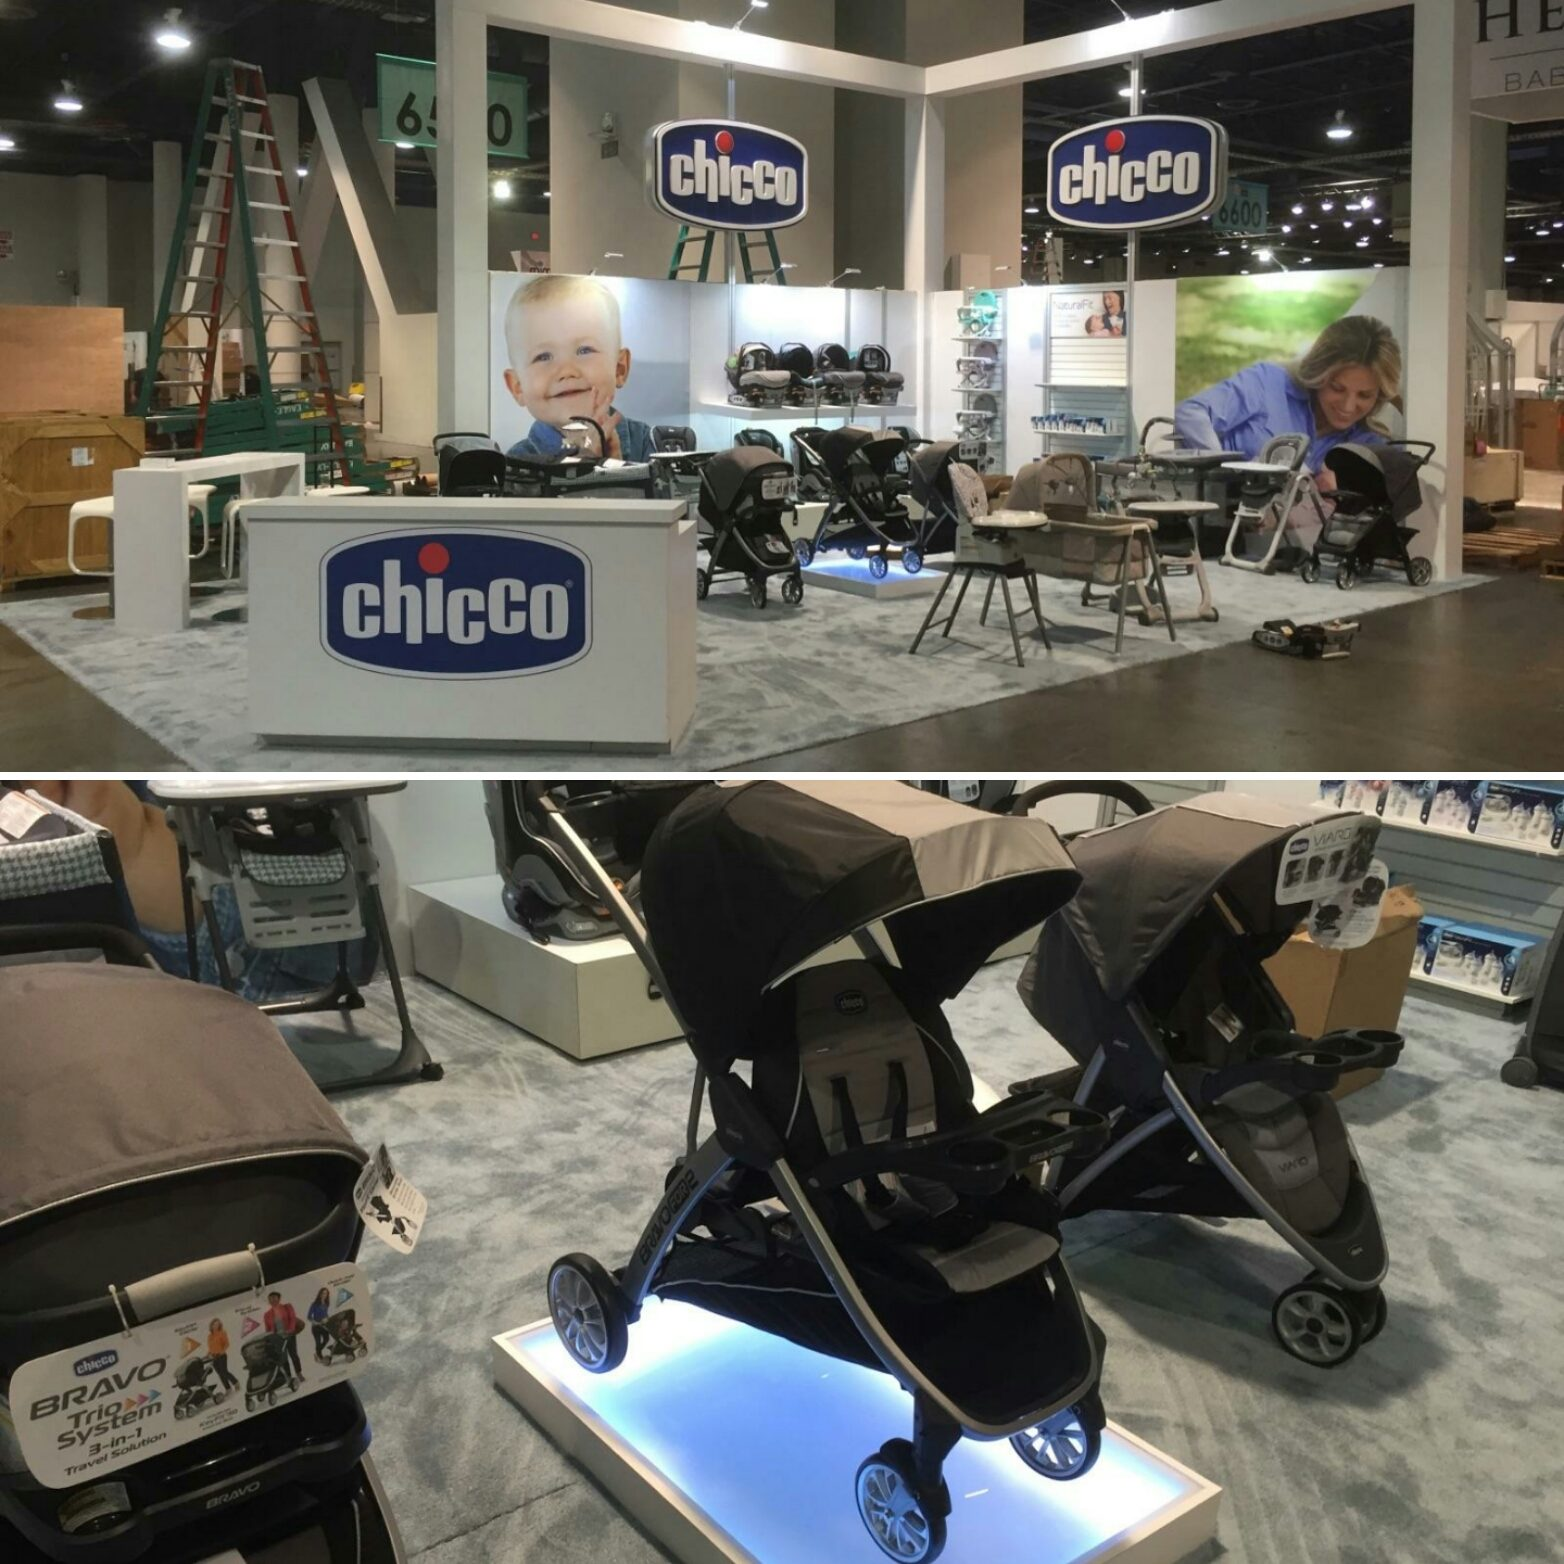 chicco-booth-20x40-front-view